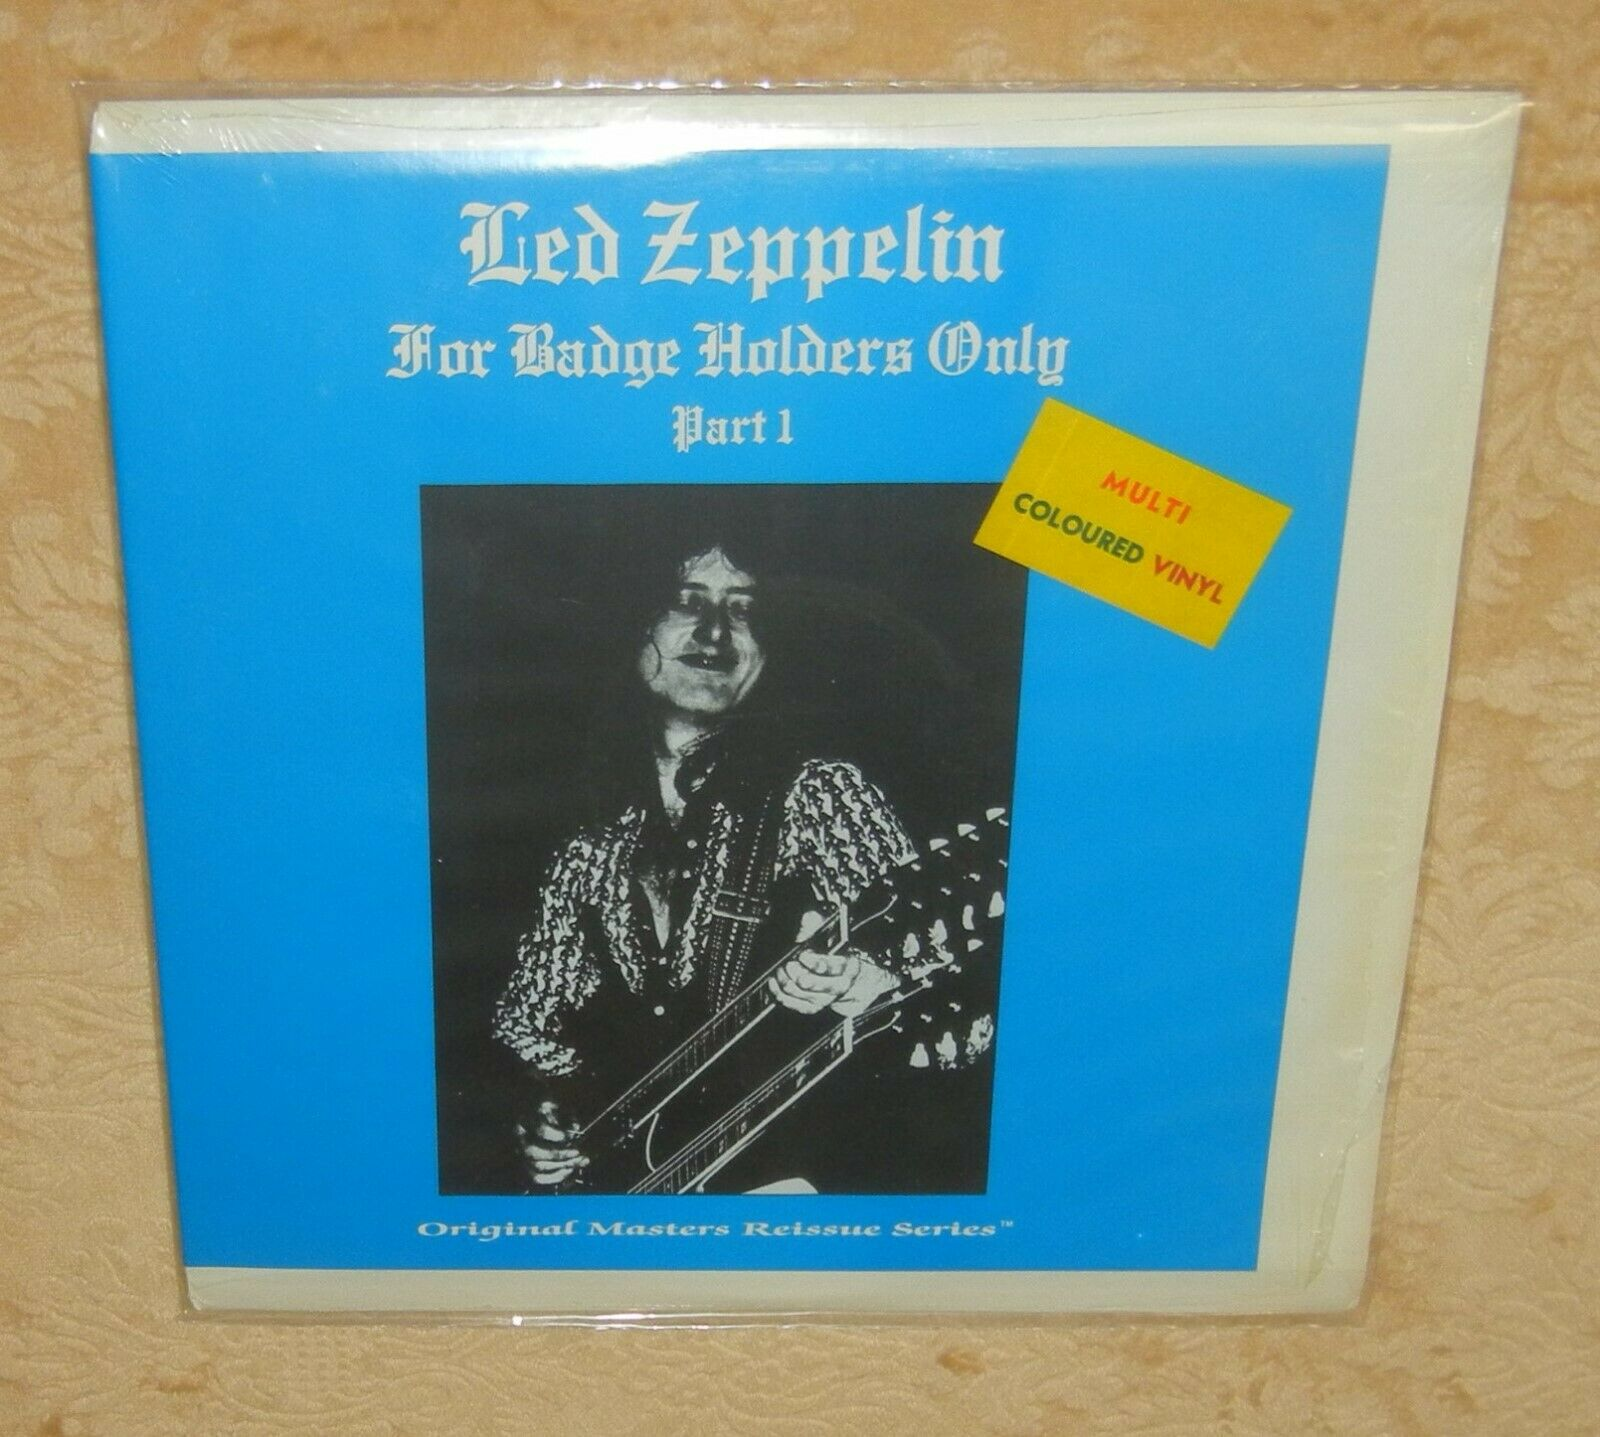 LED ZEPPELIN  FOR BADGE HOLDERS ONLY PART 1  MULTI COLORED VINYL  READ BELOW